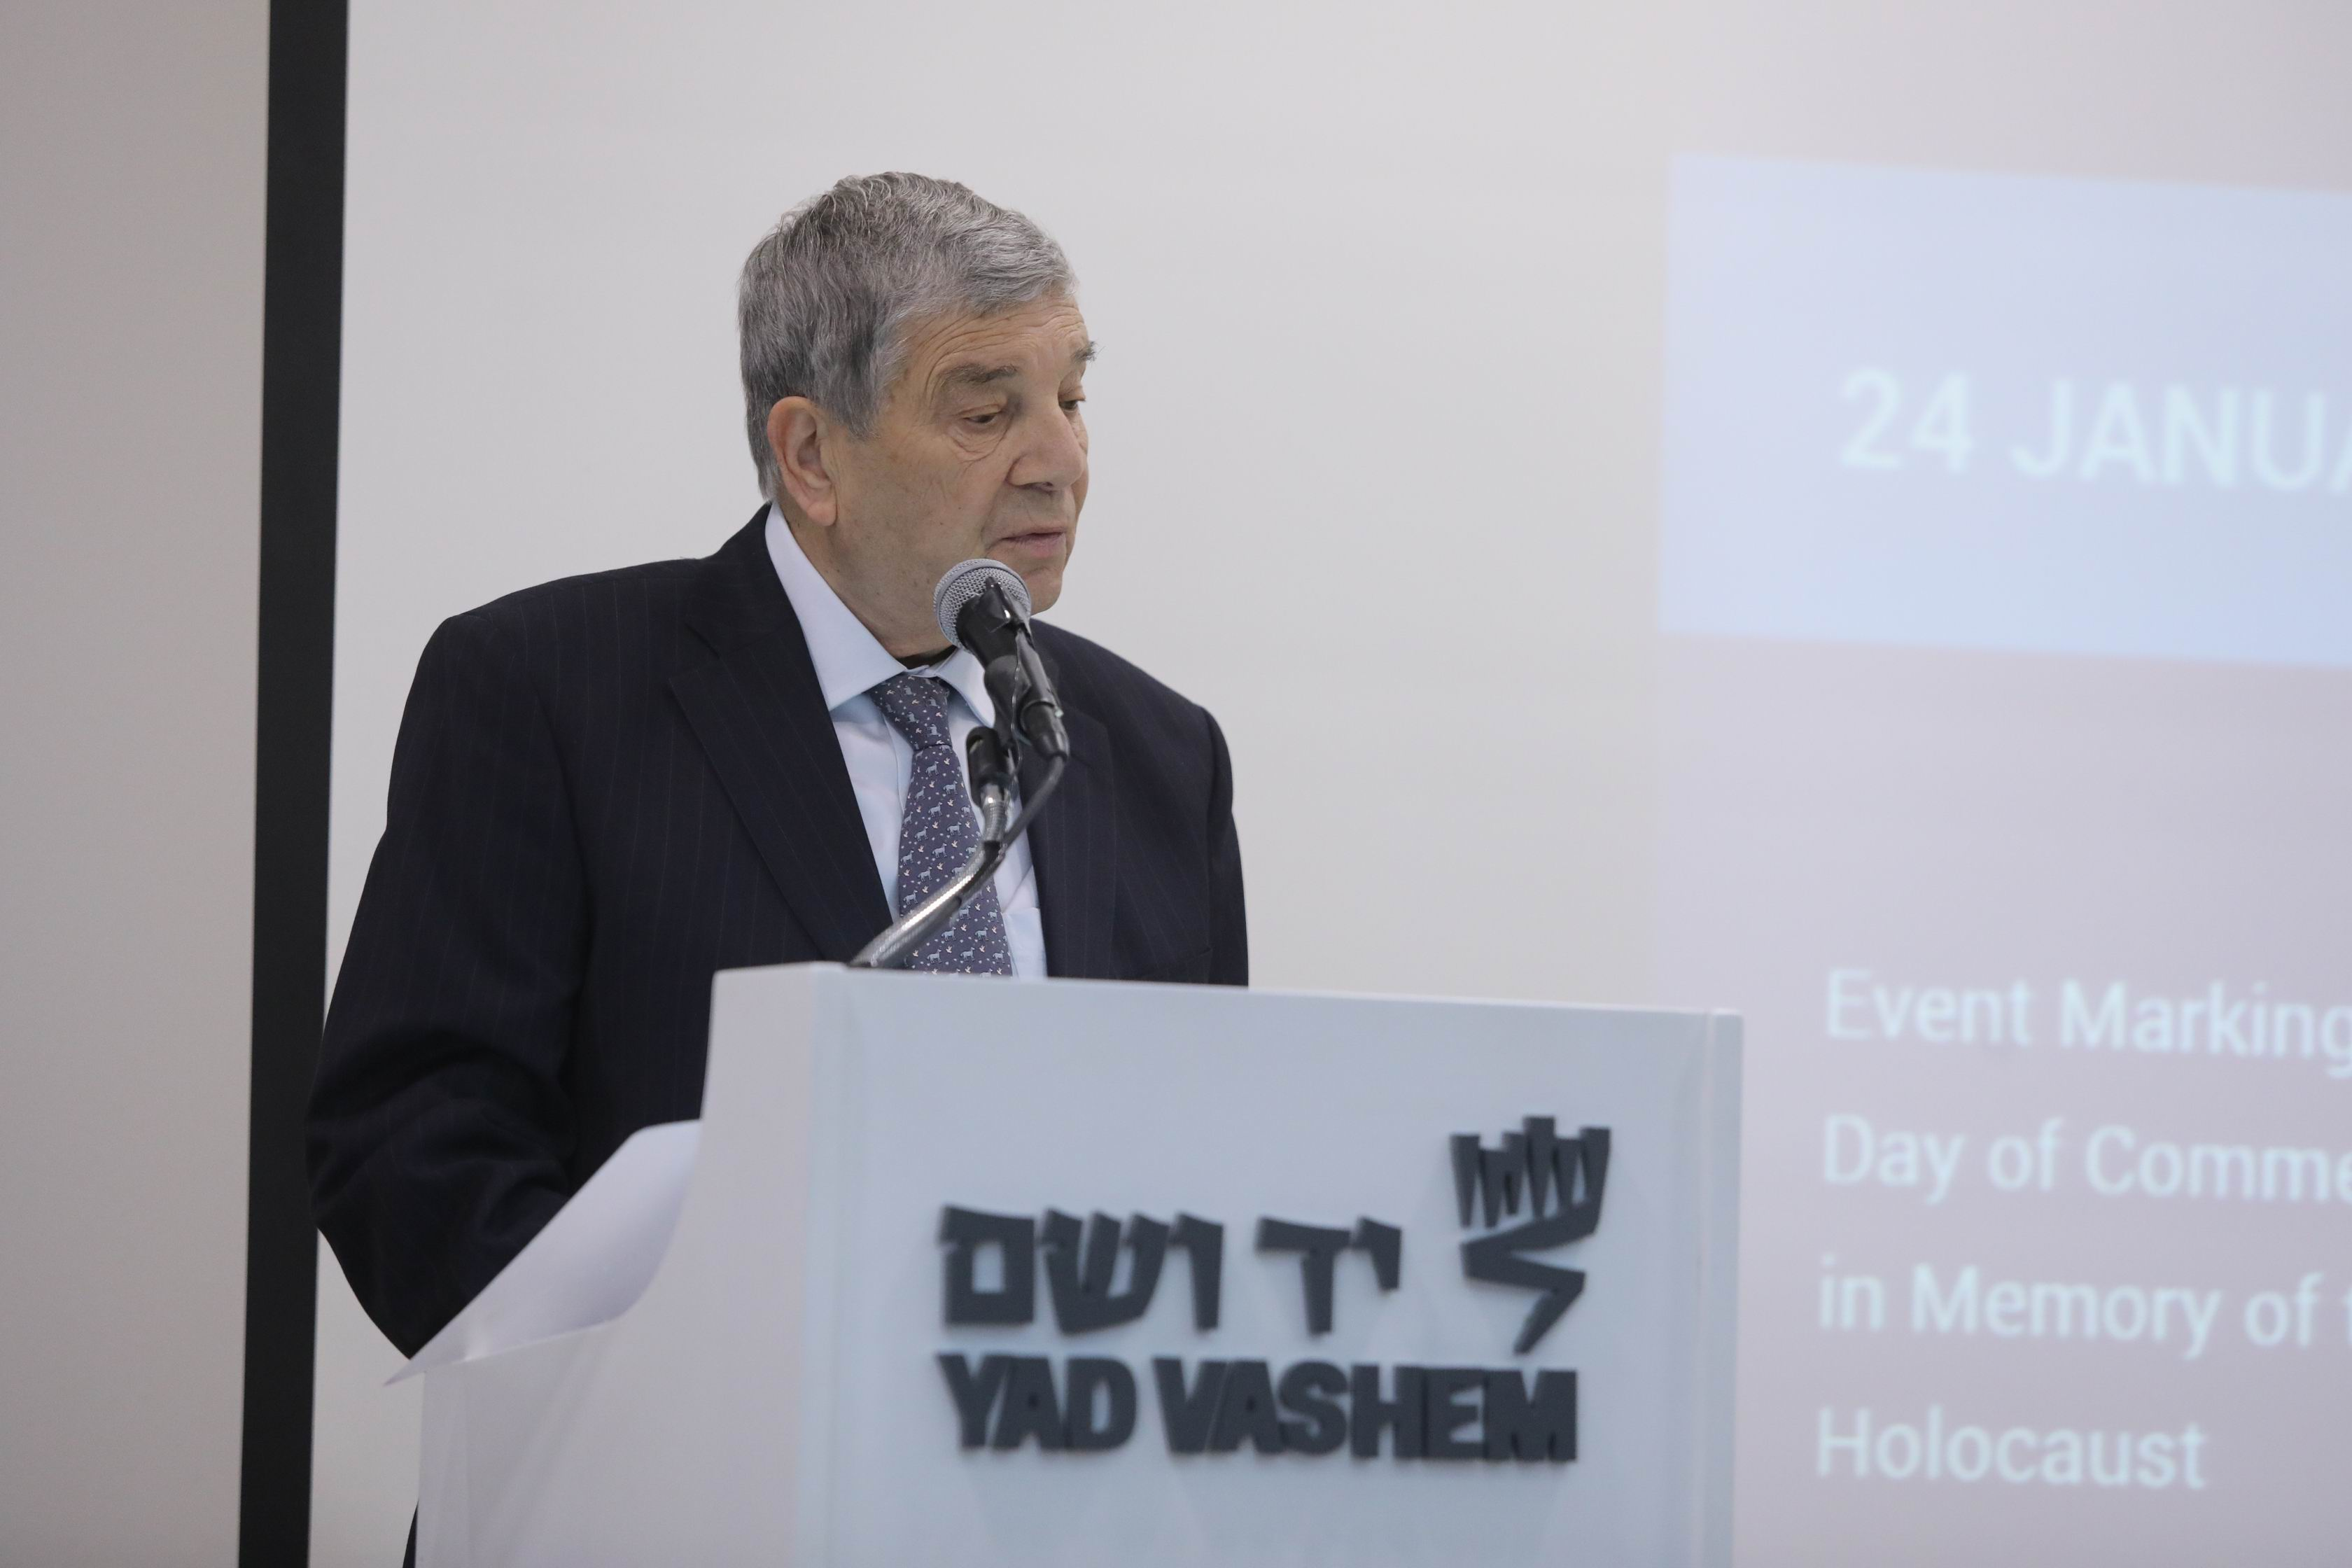 Avner Shalev reiterated the essential facts of Holocaust history